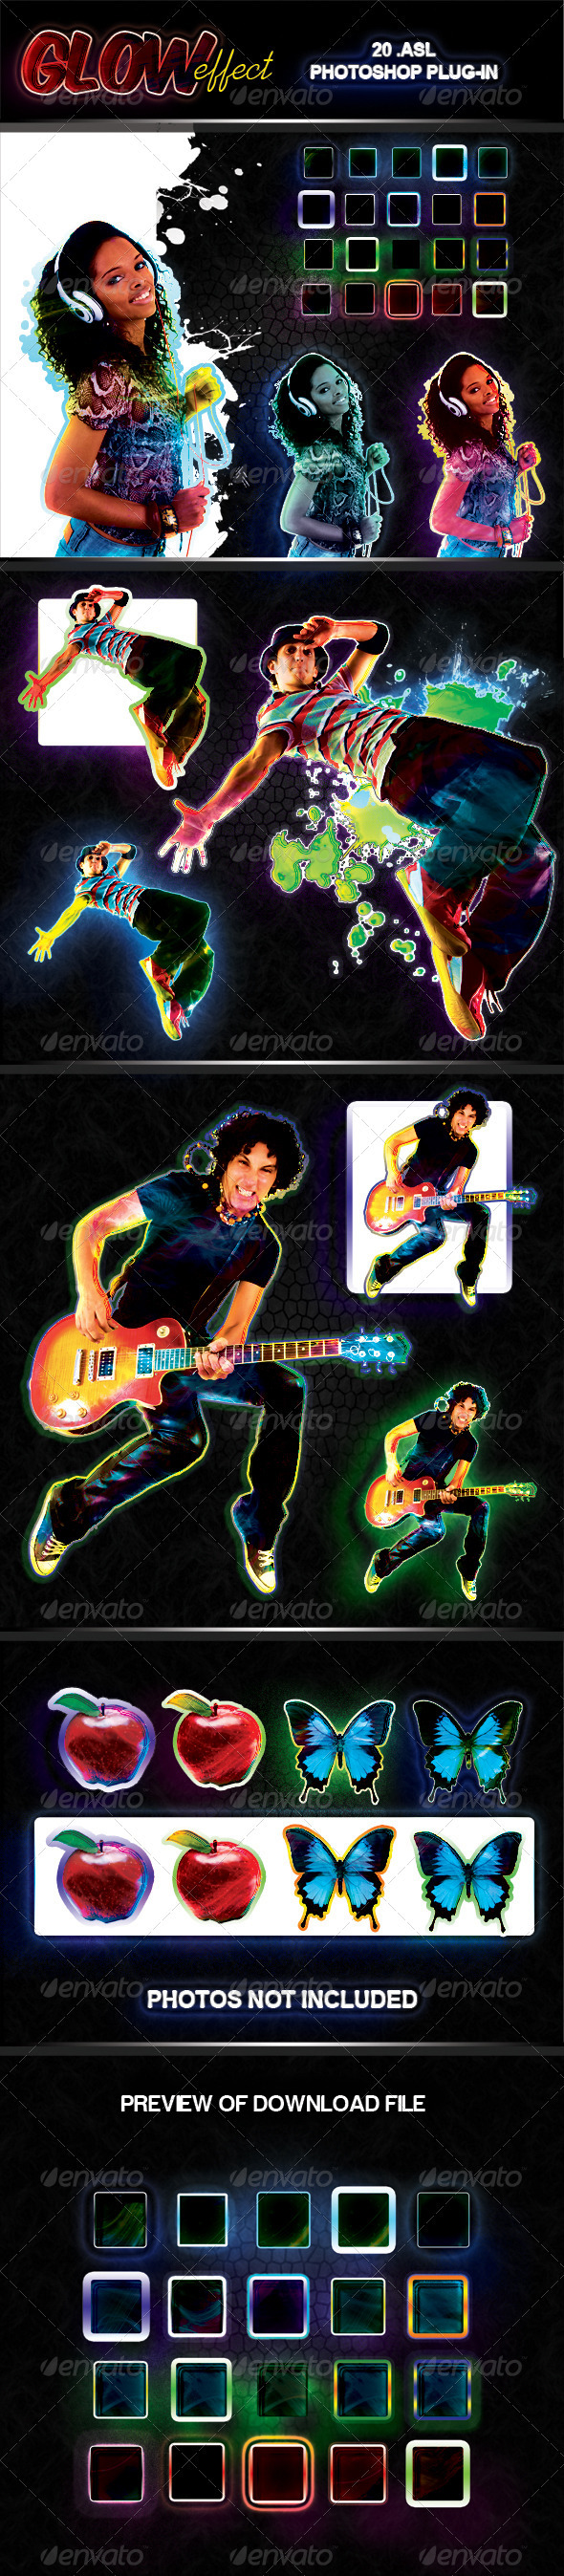 GraphicRiver Glowing Image ASL pack 639683